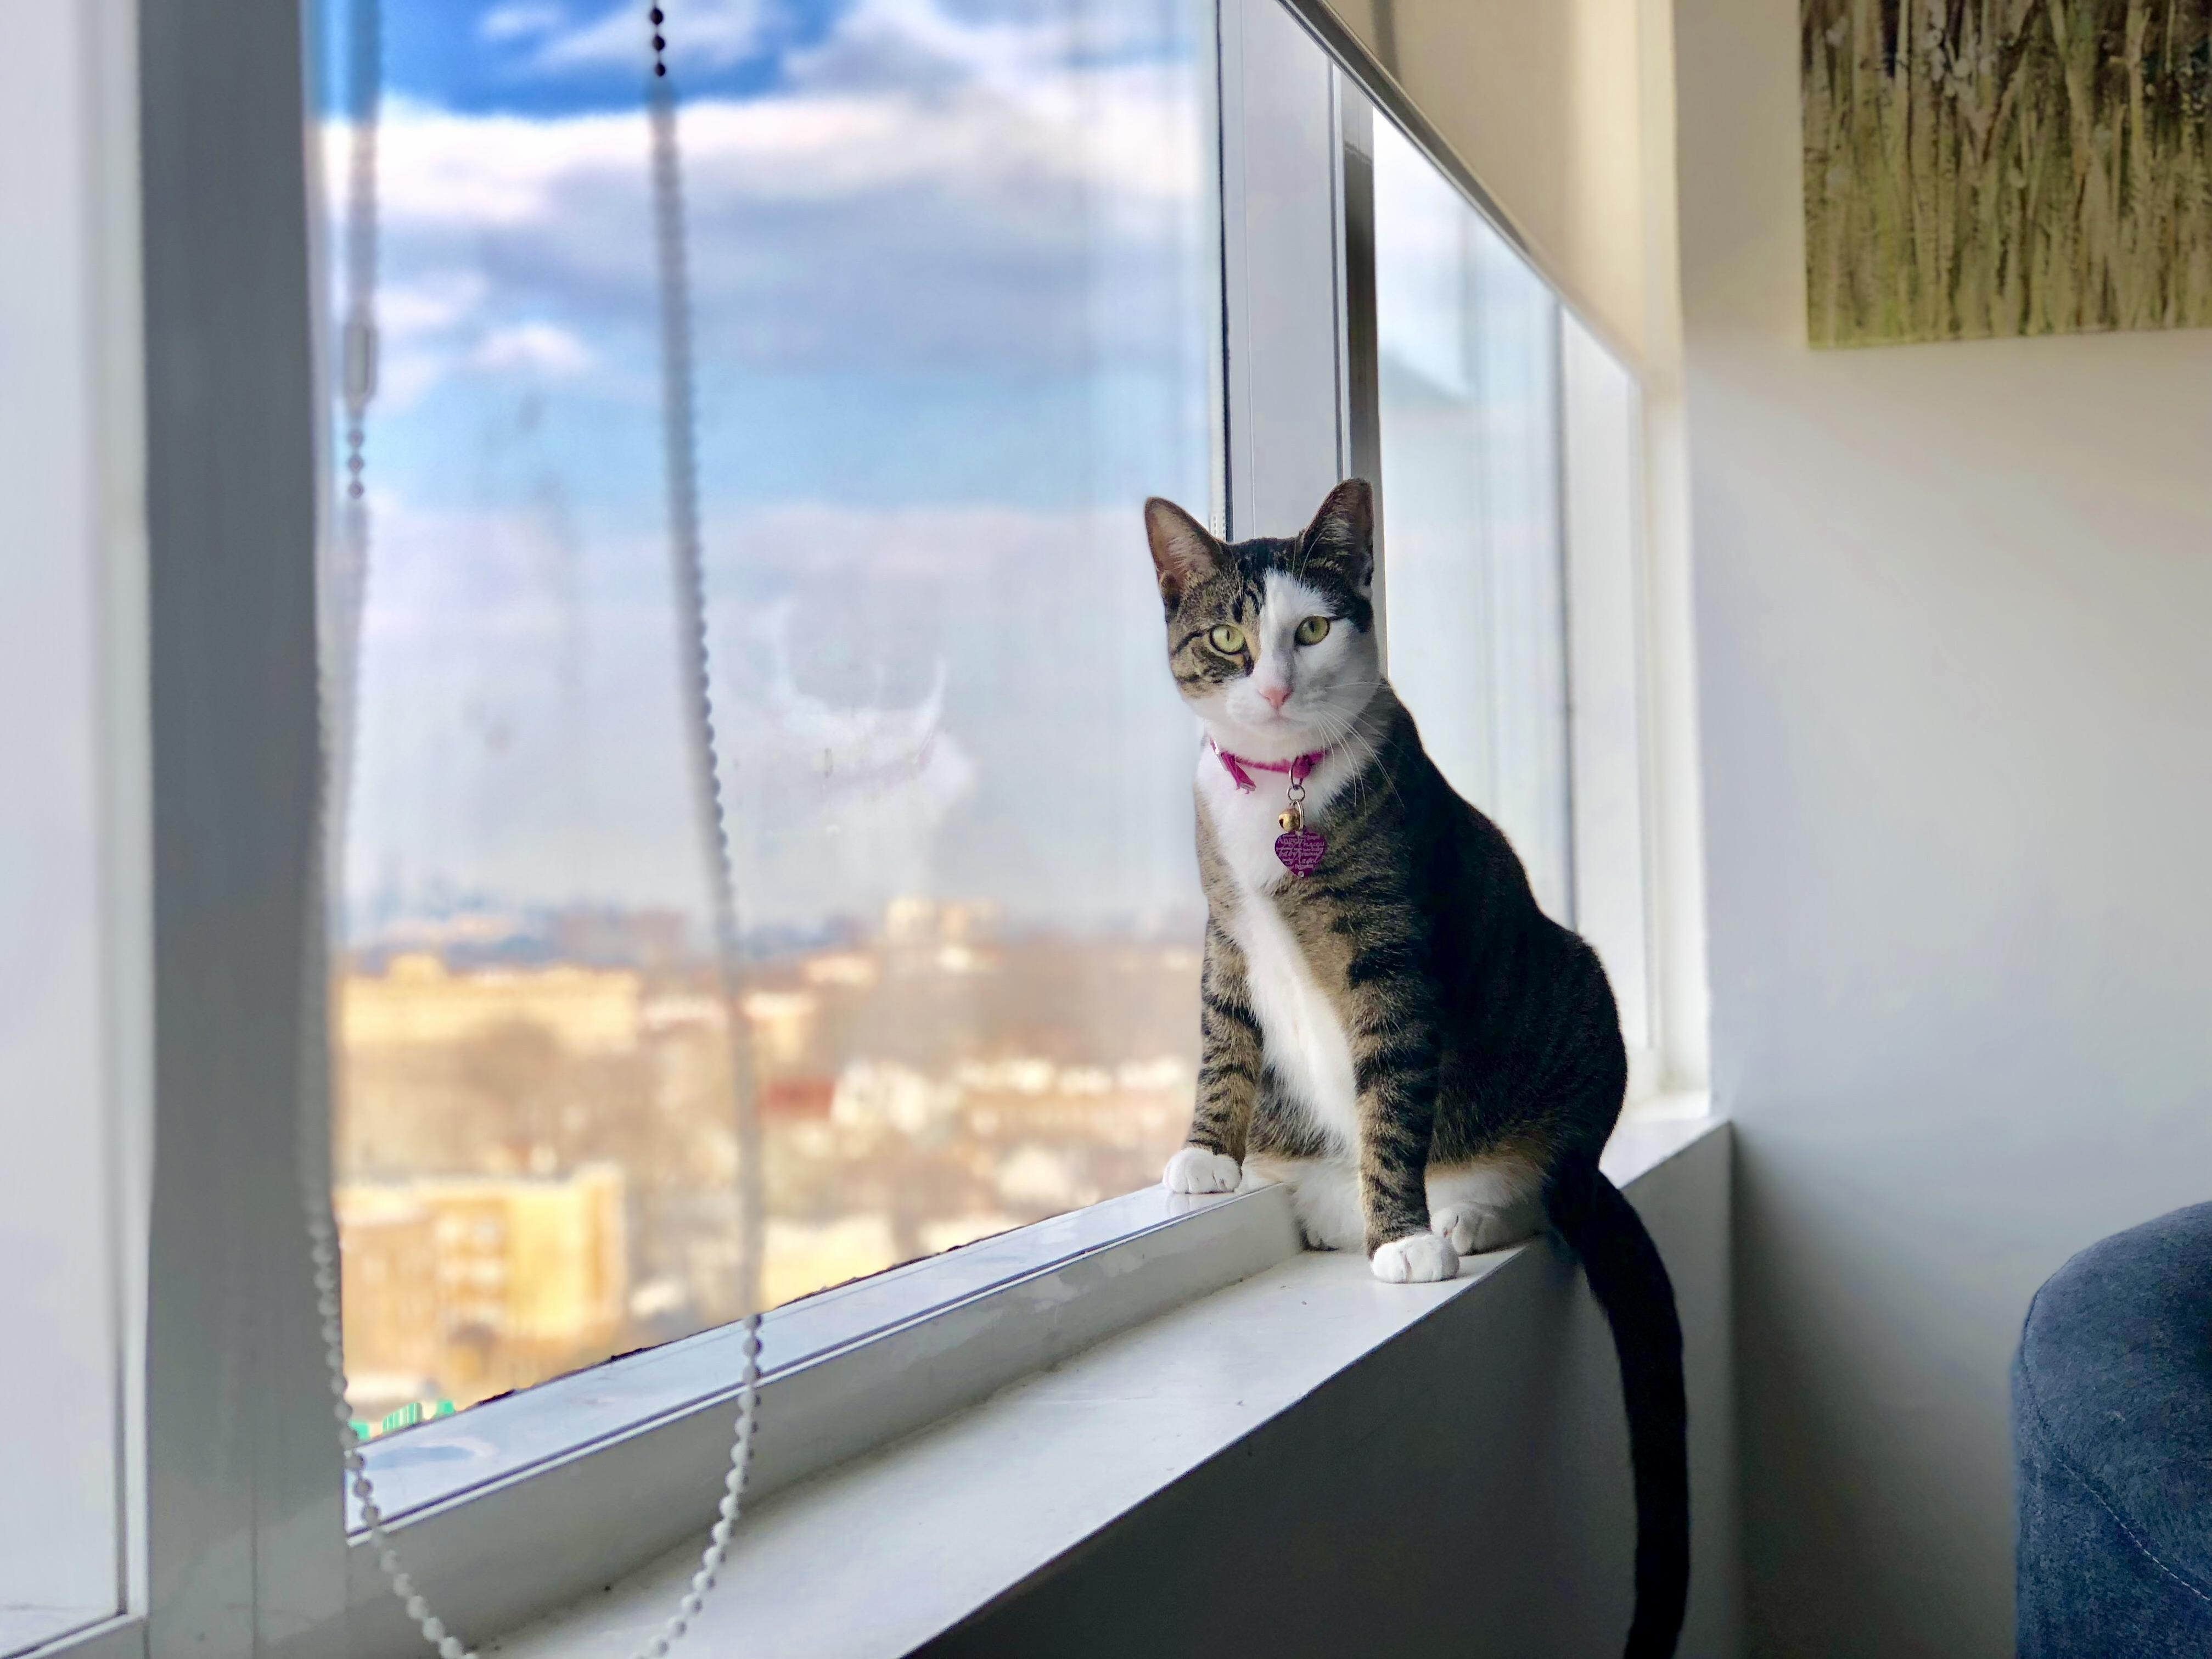 I should really buy her a tower.